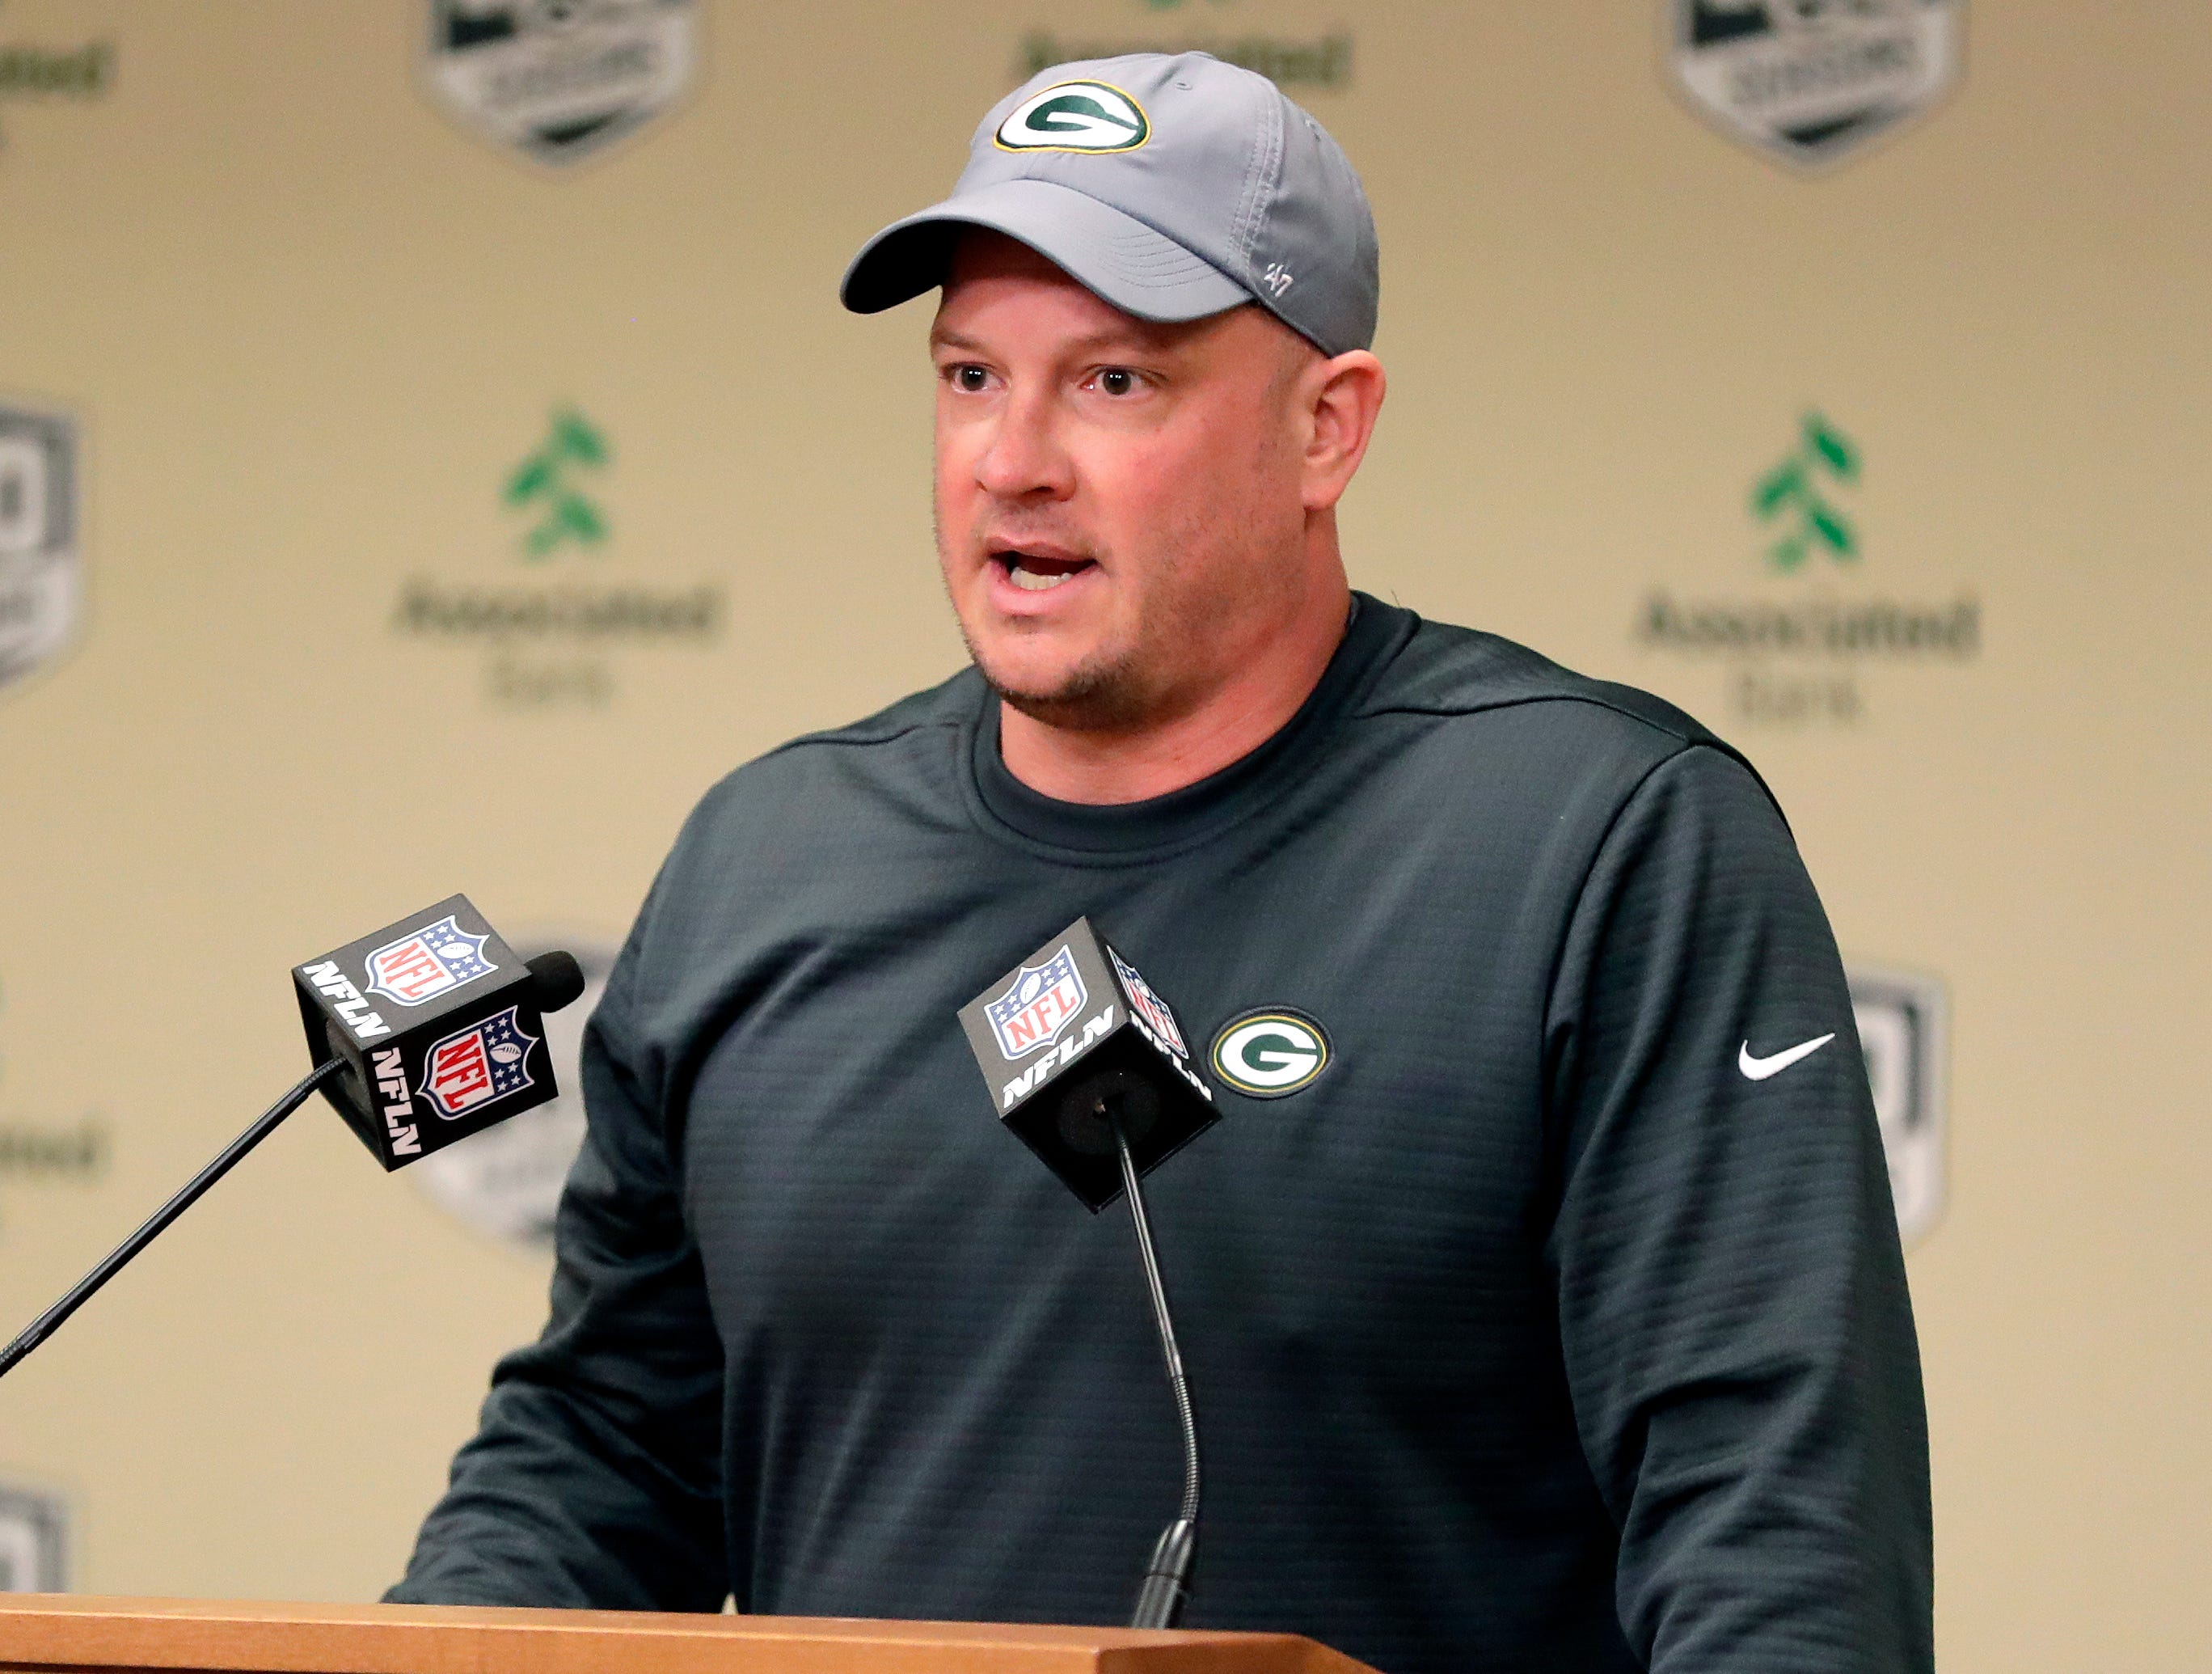 Nathaniel Hackett, the Green Bay Packers' new offensive coordinator, speaks to media on Feb. 18, 2019 at Lambeau Field in Green Bay, Wis.